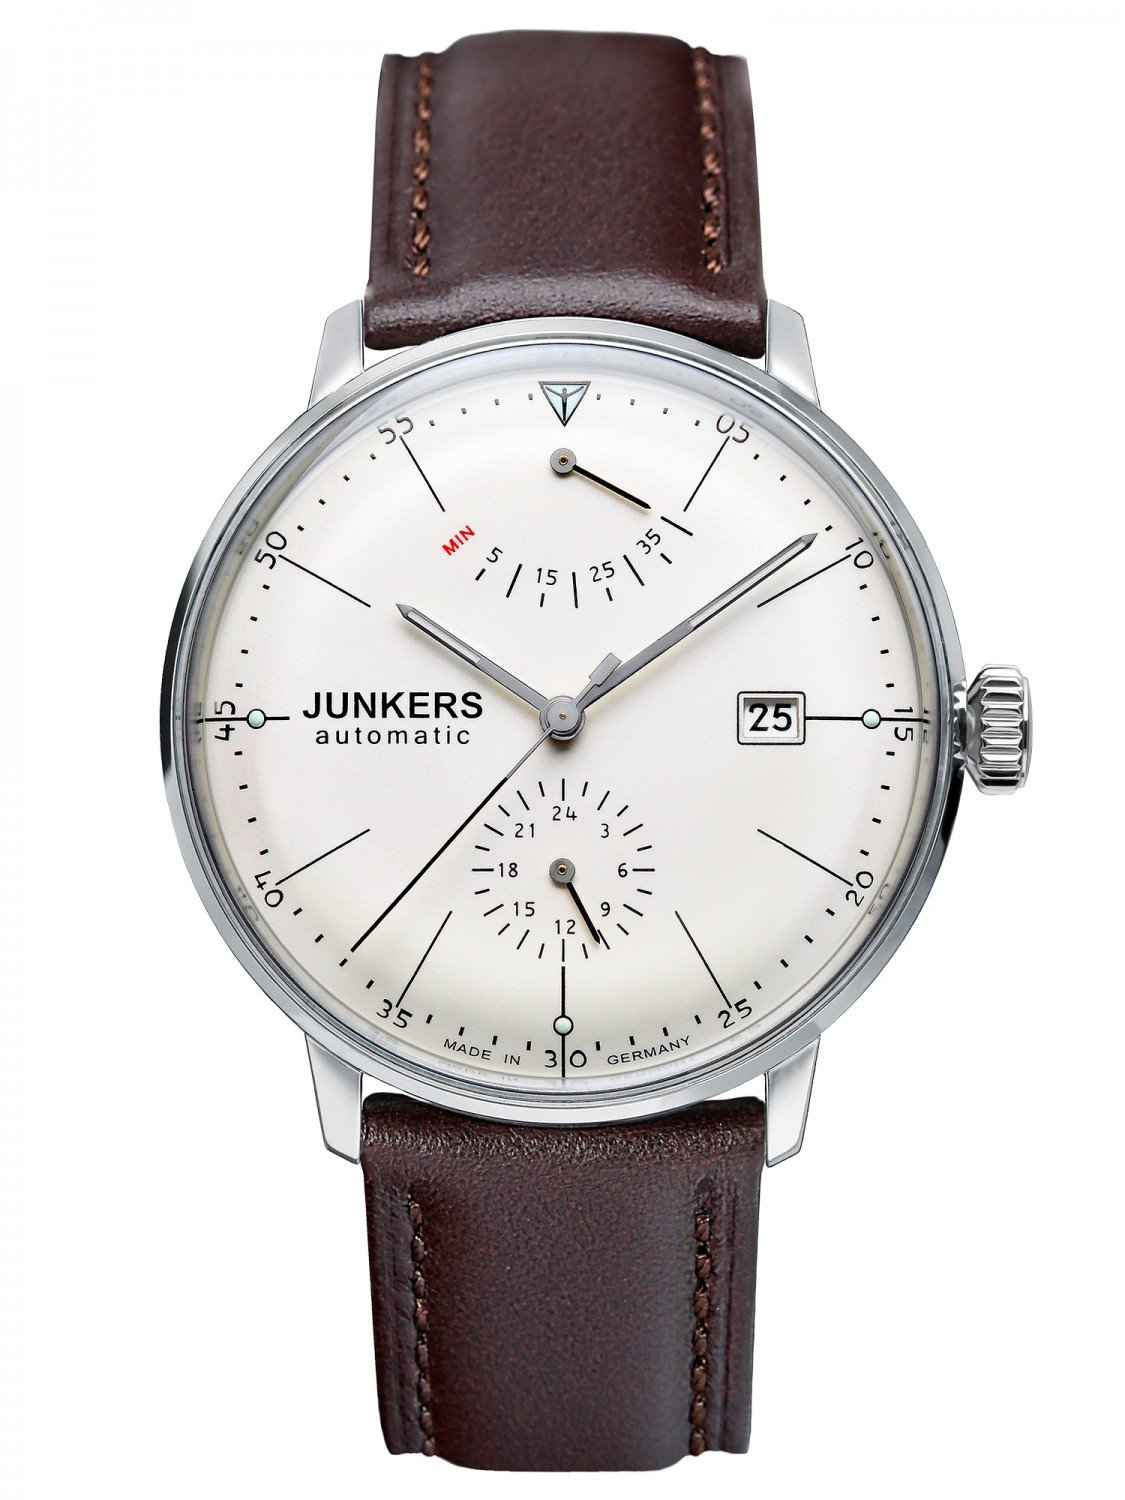 JUNKERS Bauhaus Automatic Mens Watch 6060-5 • uhrcenter